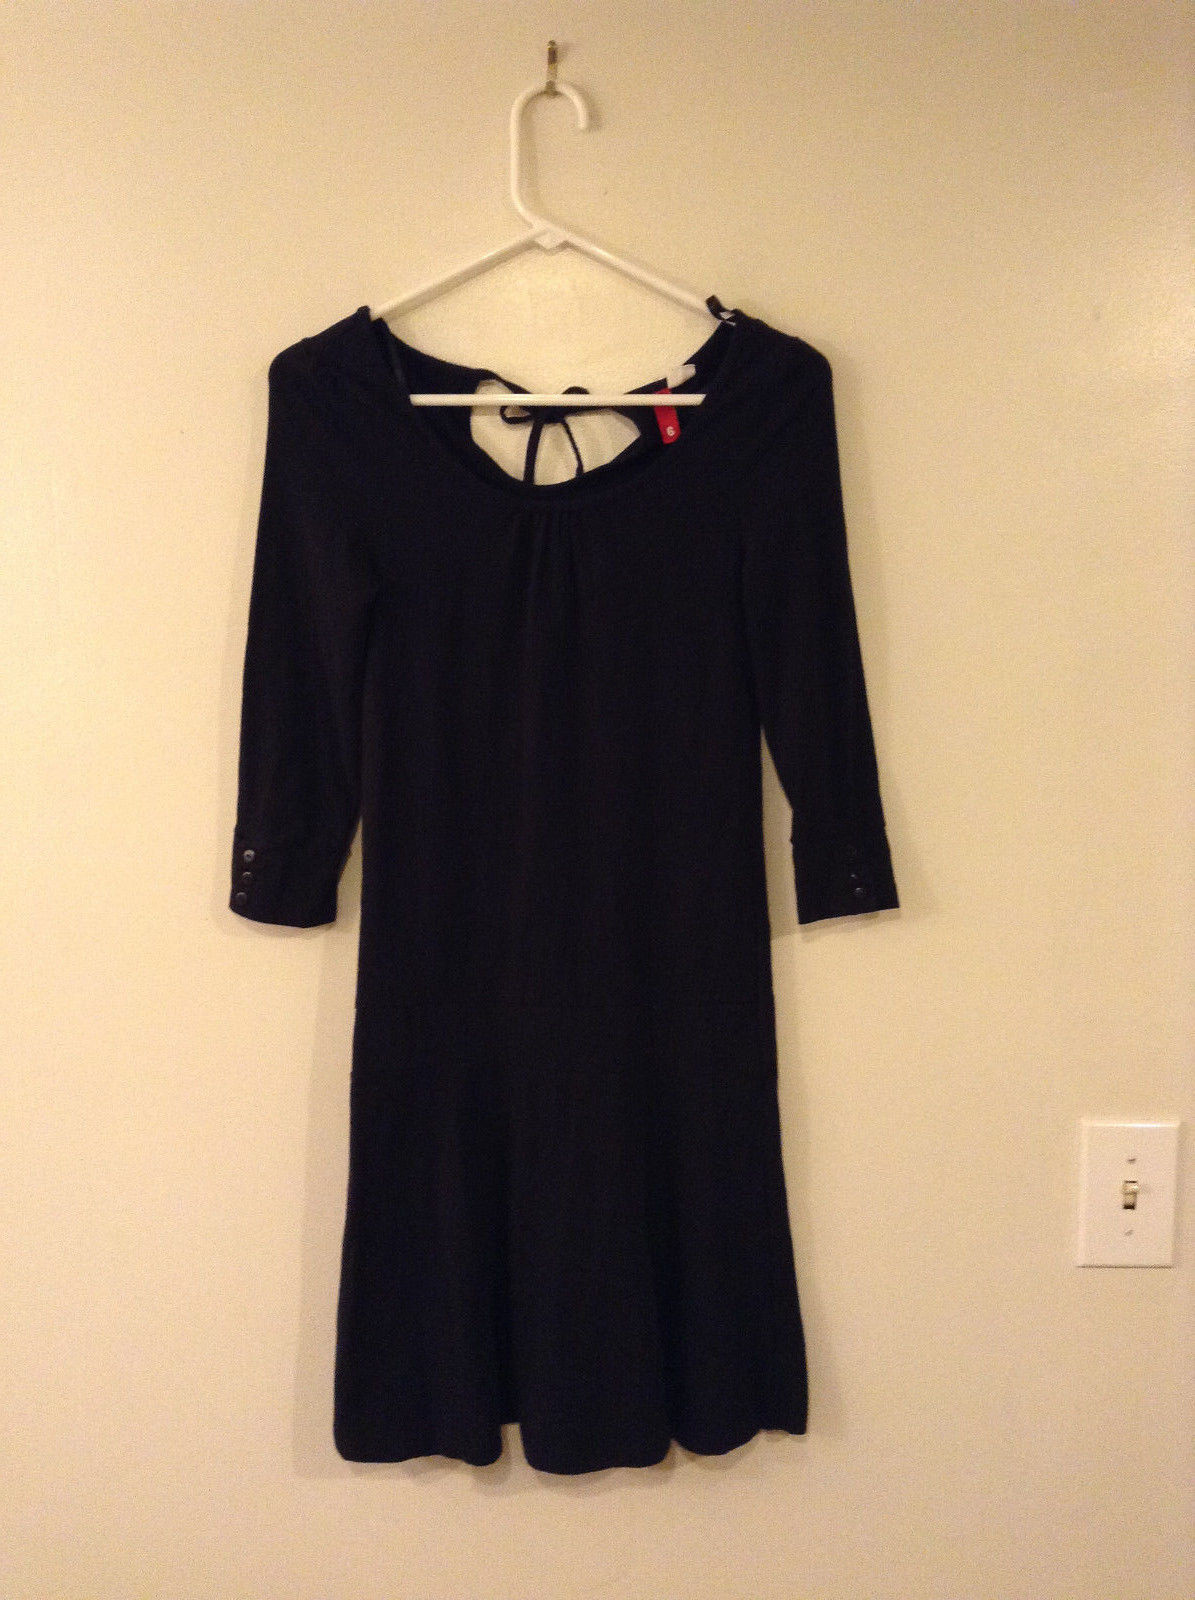 H&M DIVIDED Women's Size 6 Drop Waist Dress Black Jersey Knit Ruched Scoop Neck